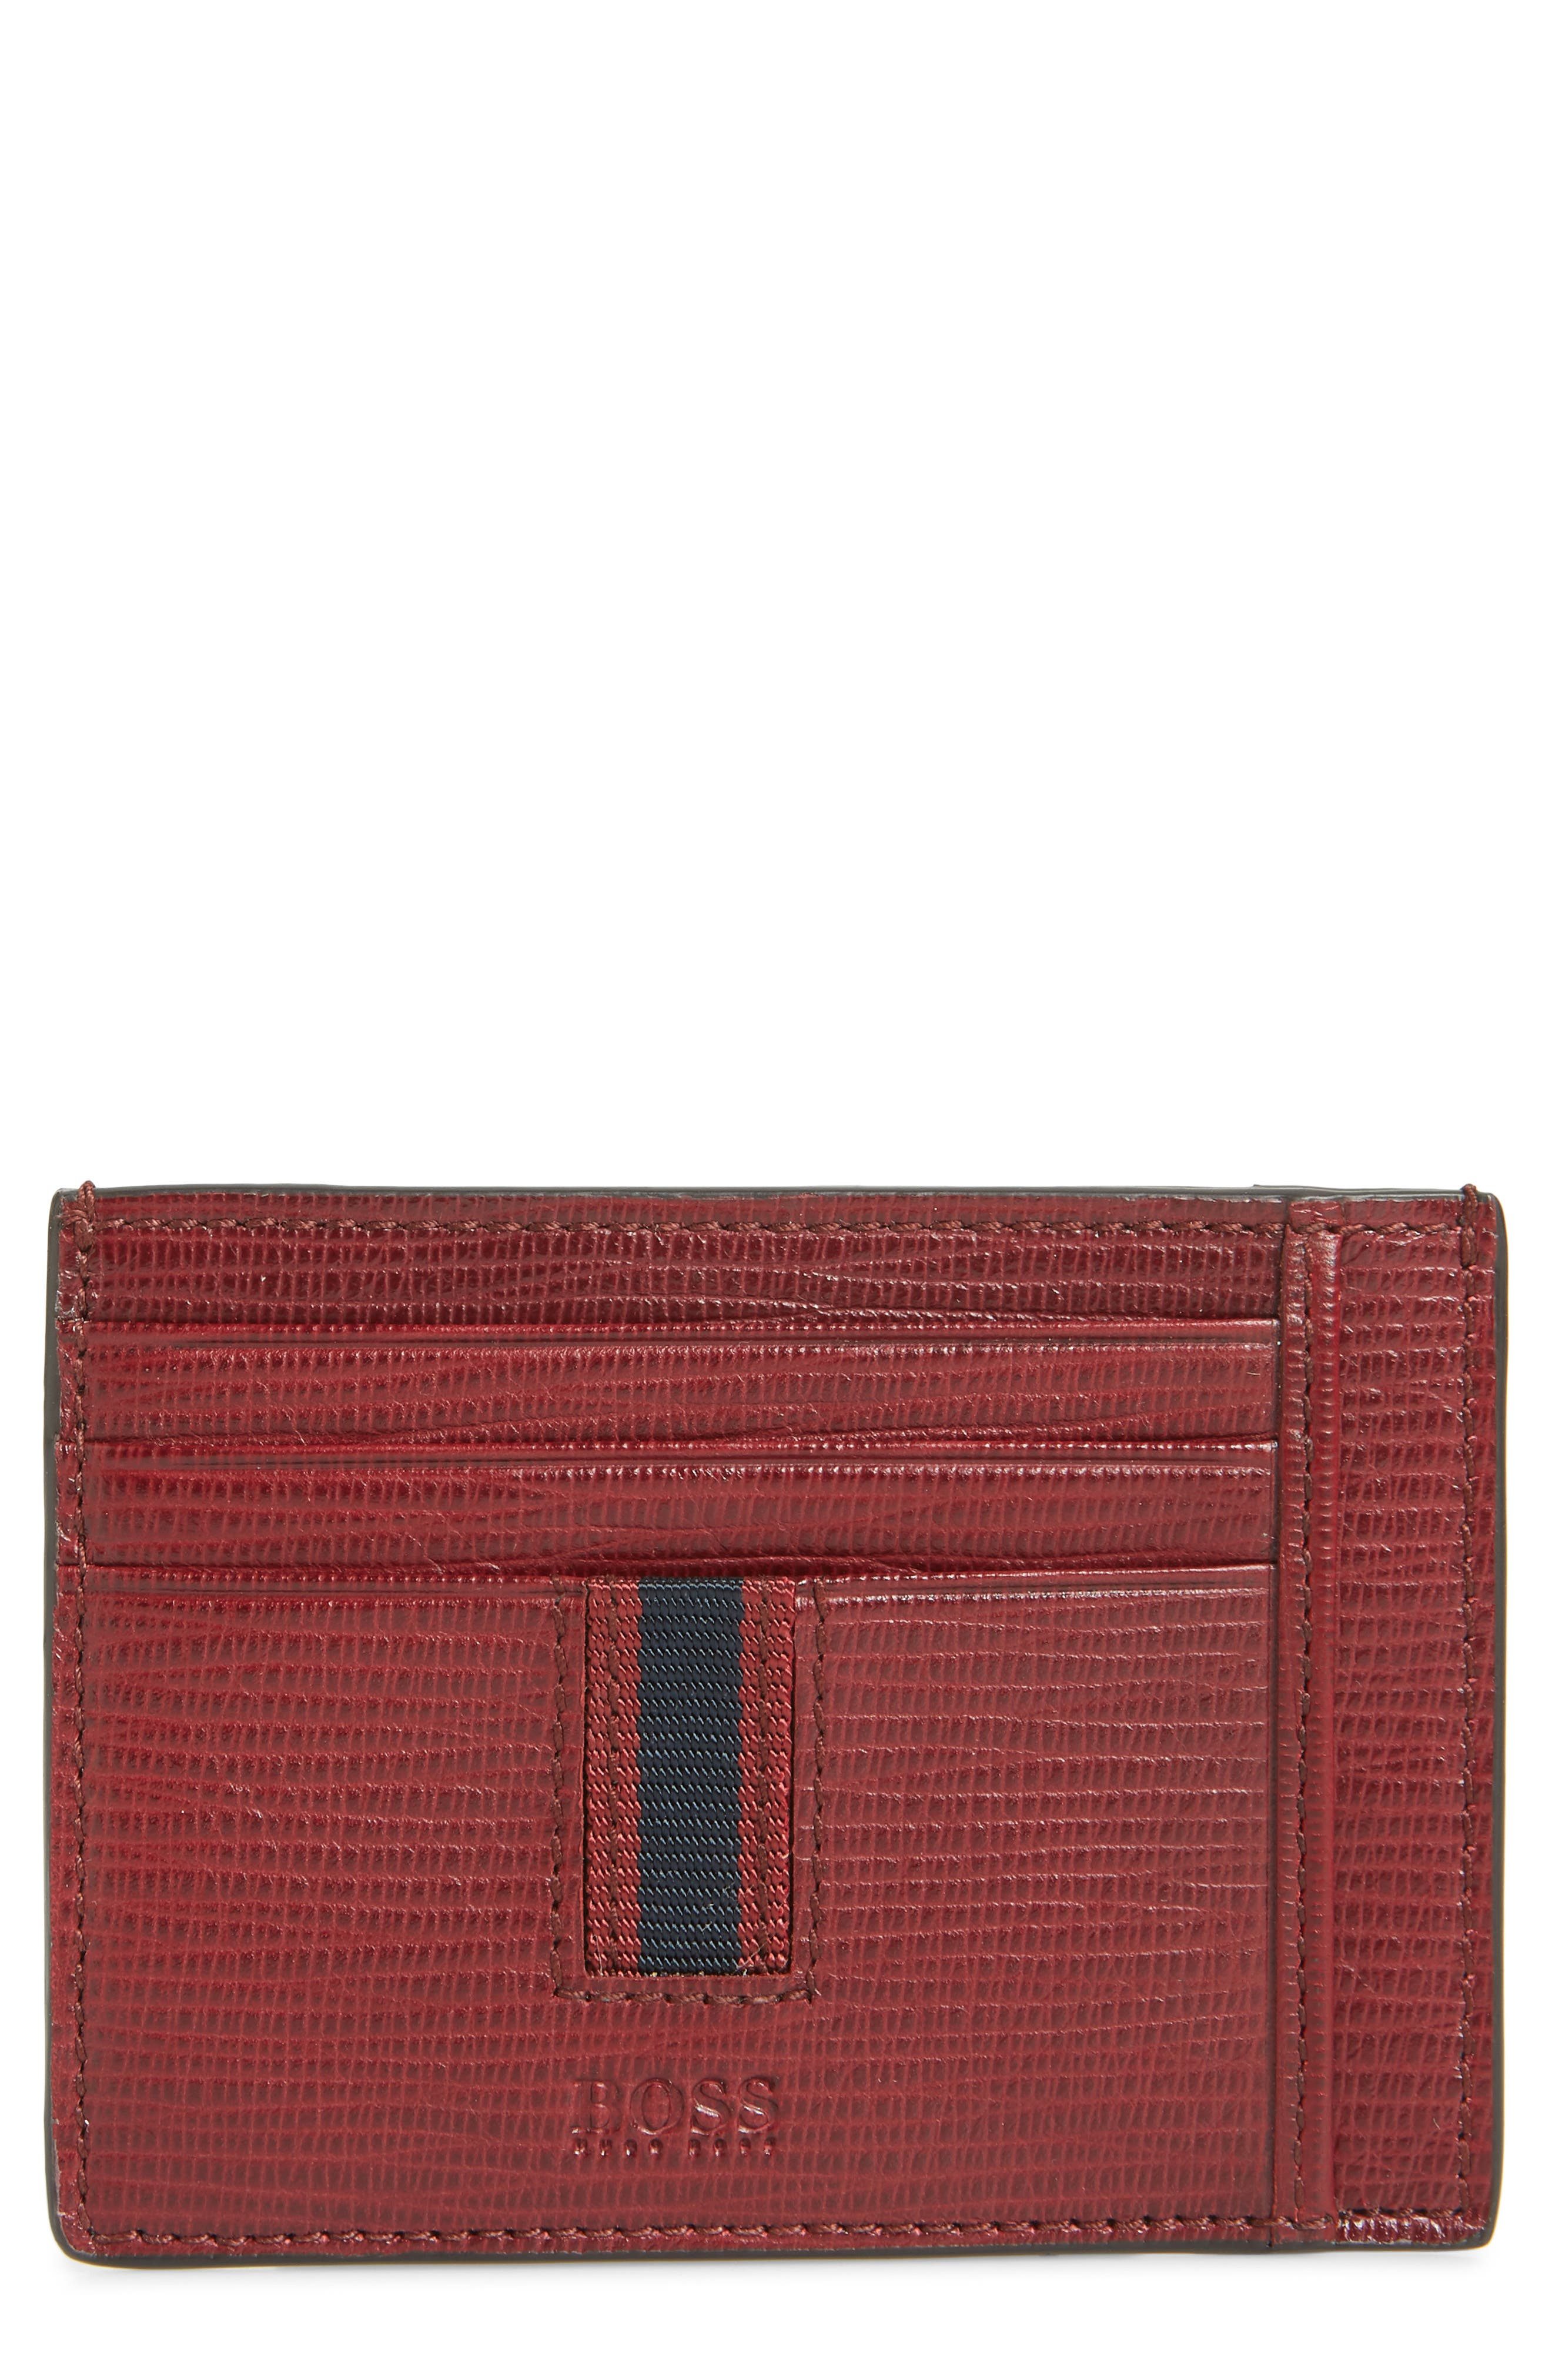 Leather Card Case,                             Main thumbnail 1, color,                             DARK RED